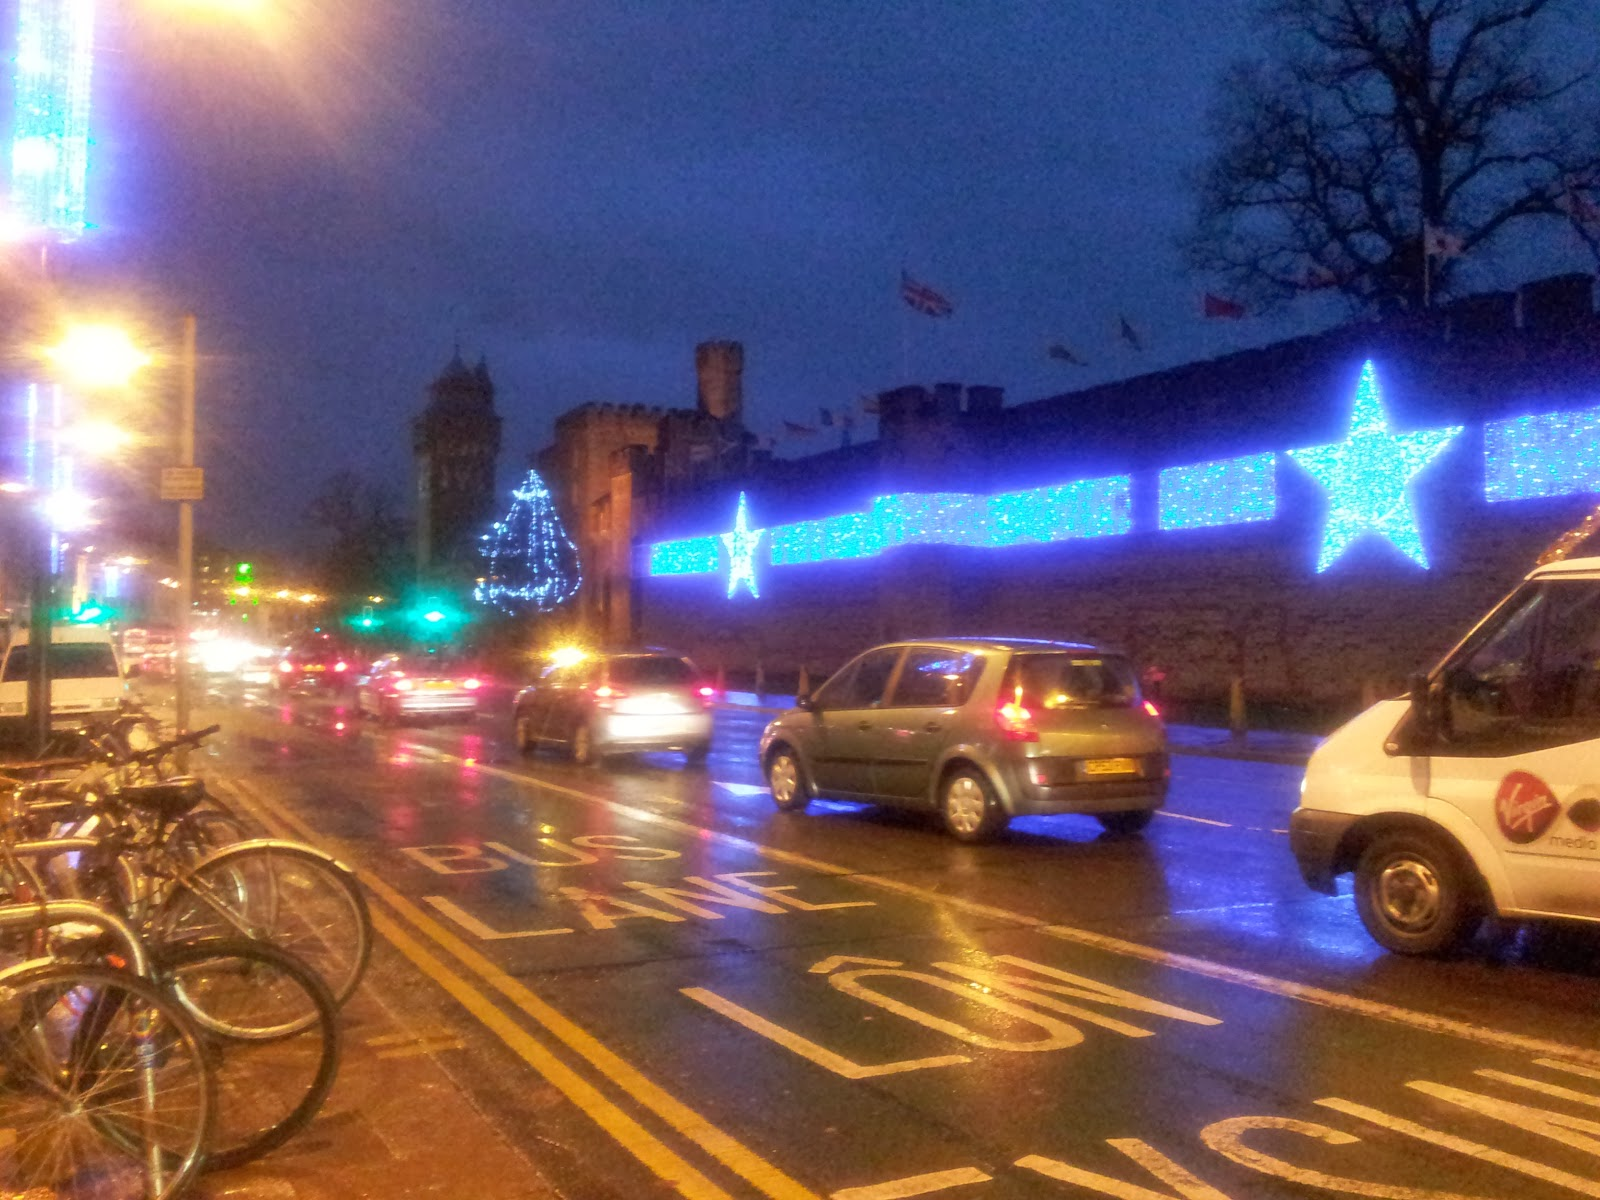 Cardiff Castle Christmas Lights